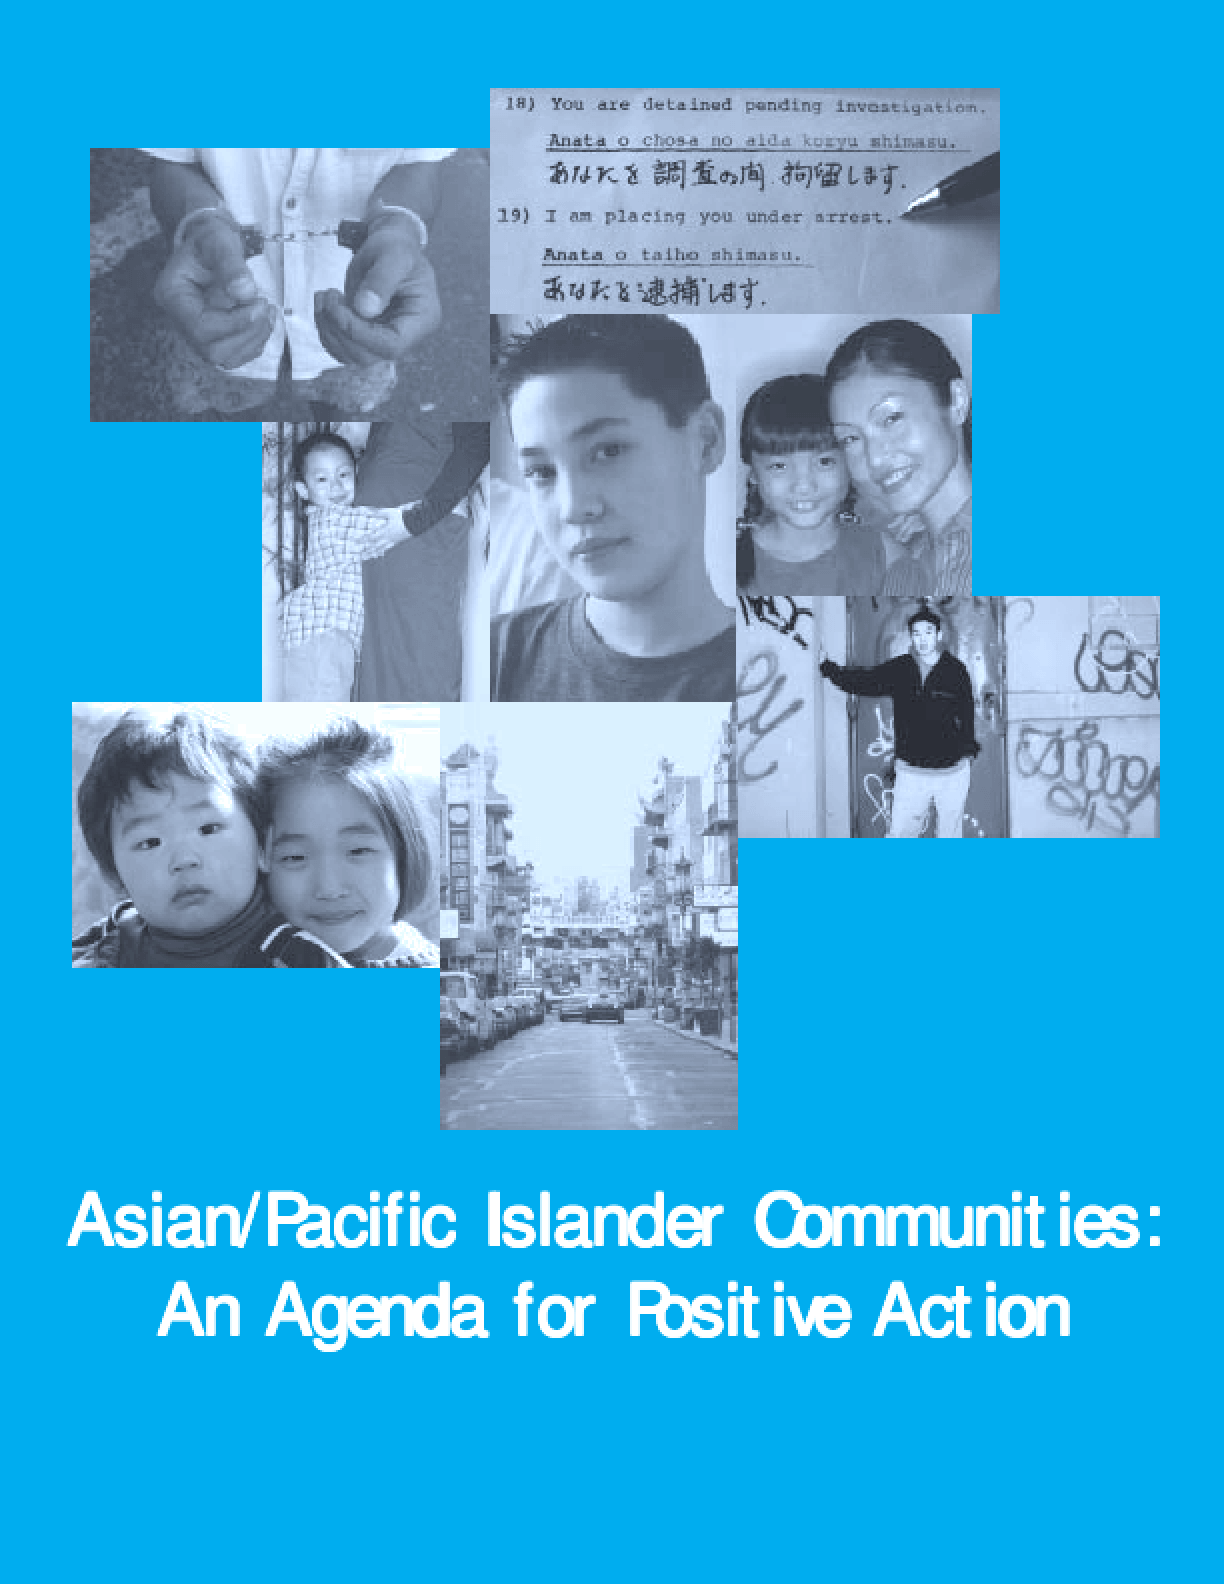 Asian/Pacific Islander Communities: An Agenda for Positive Action